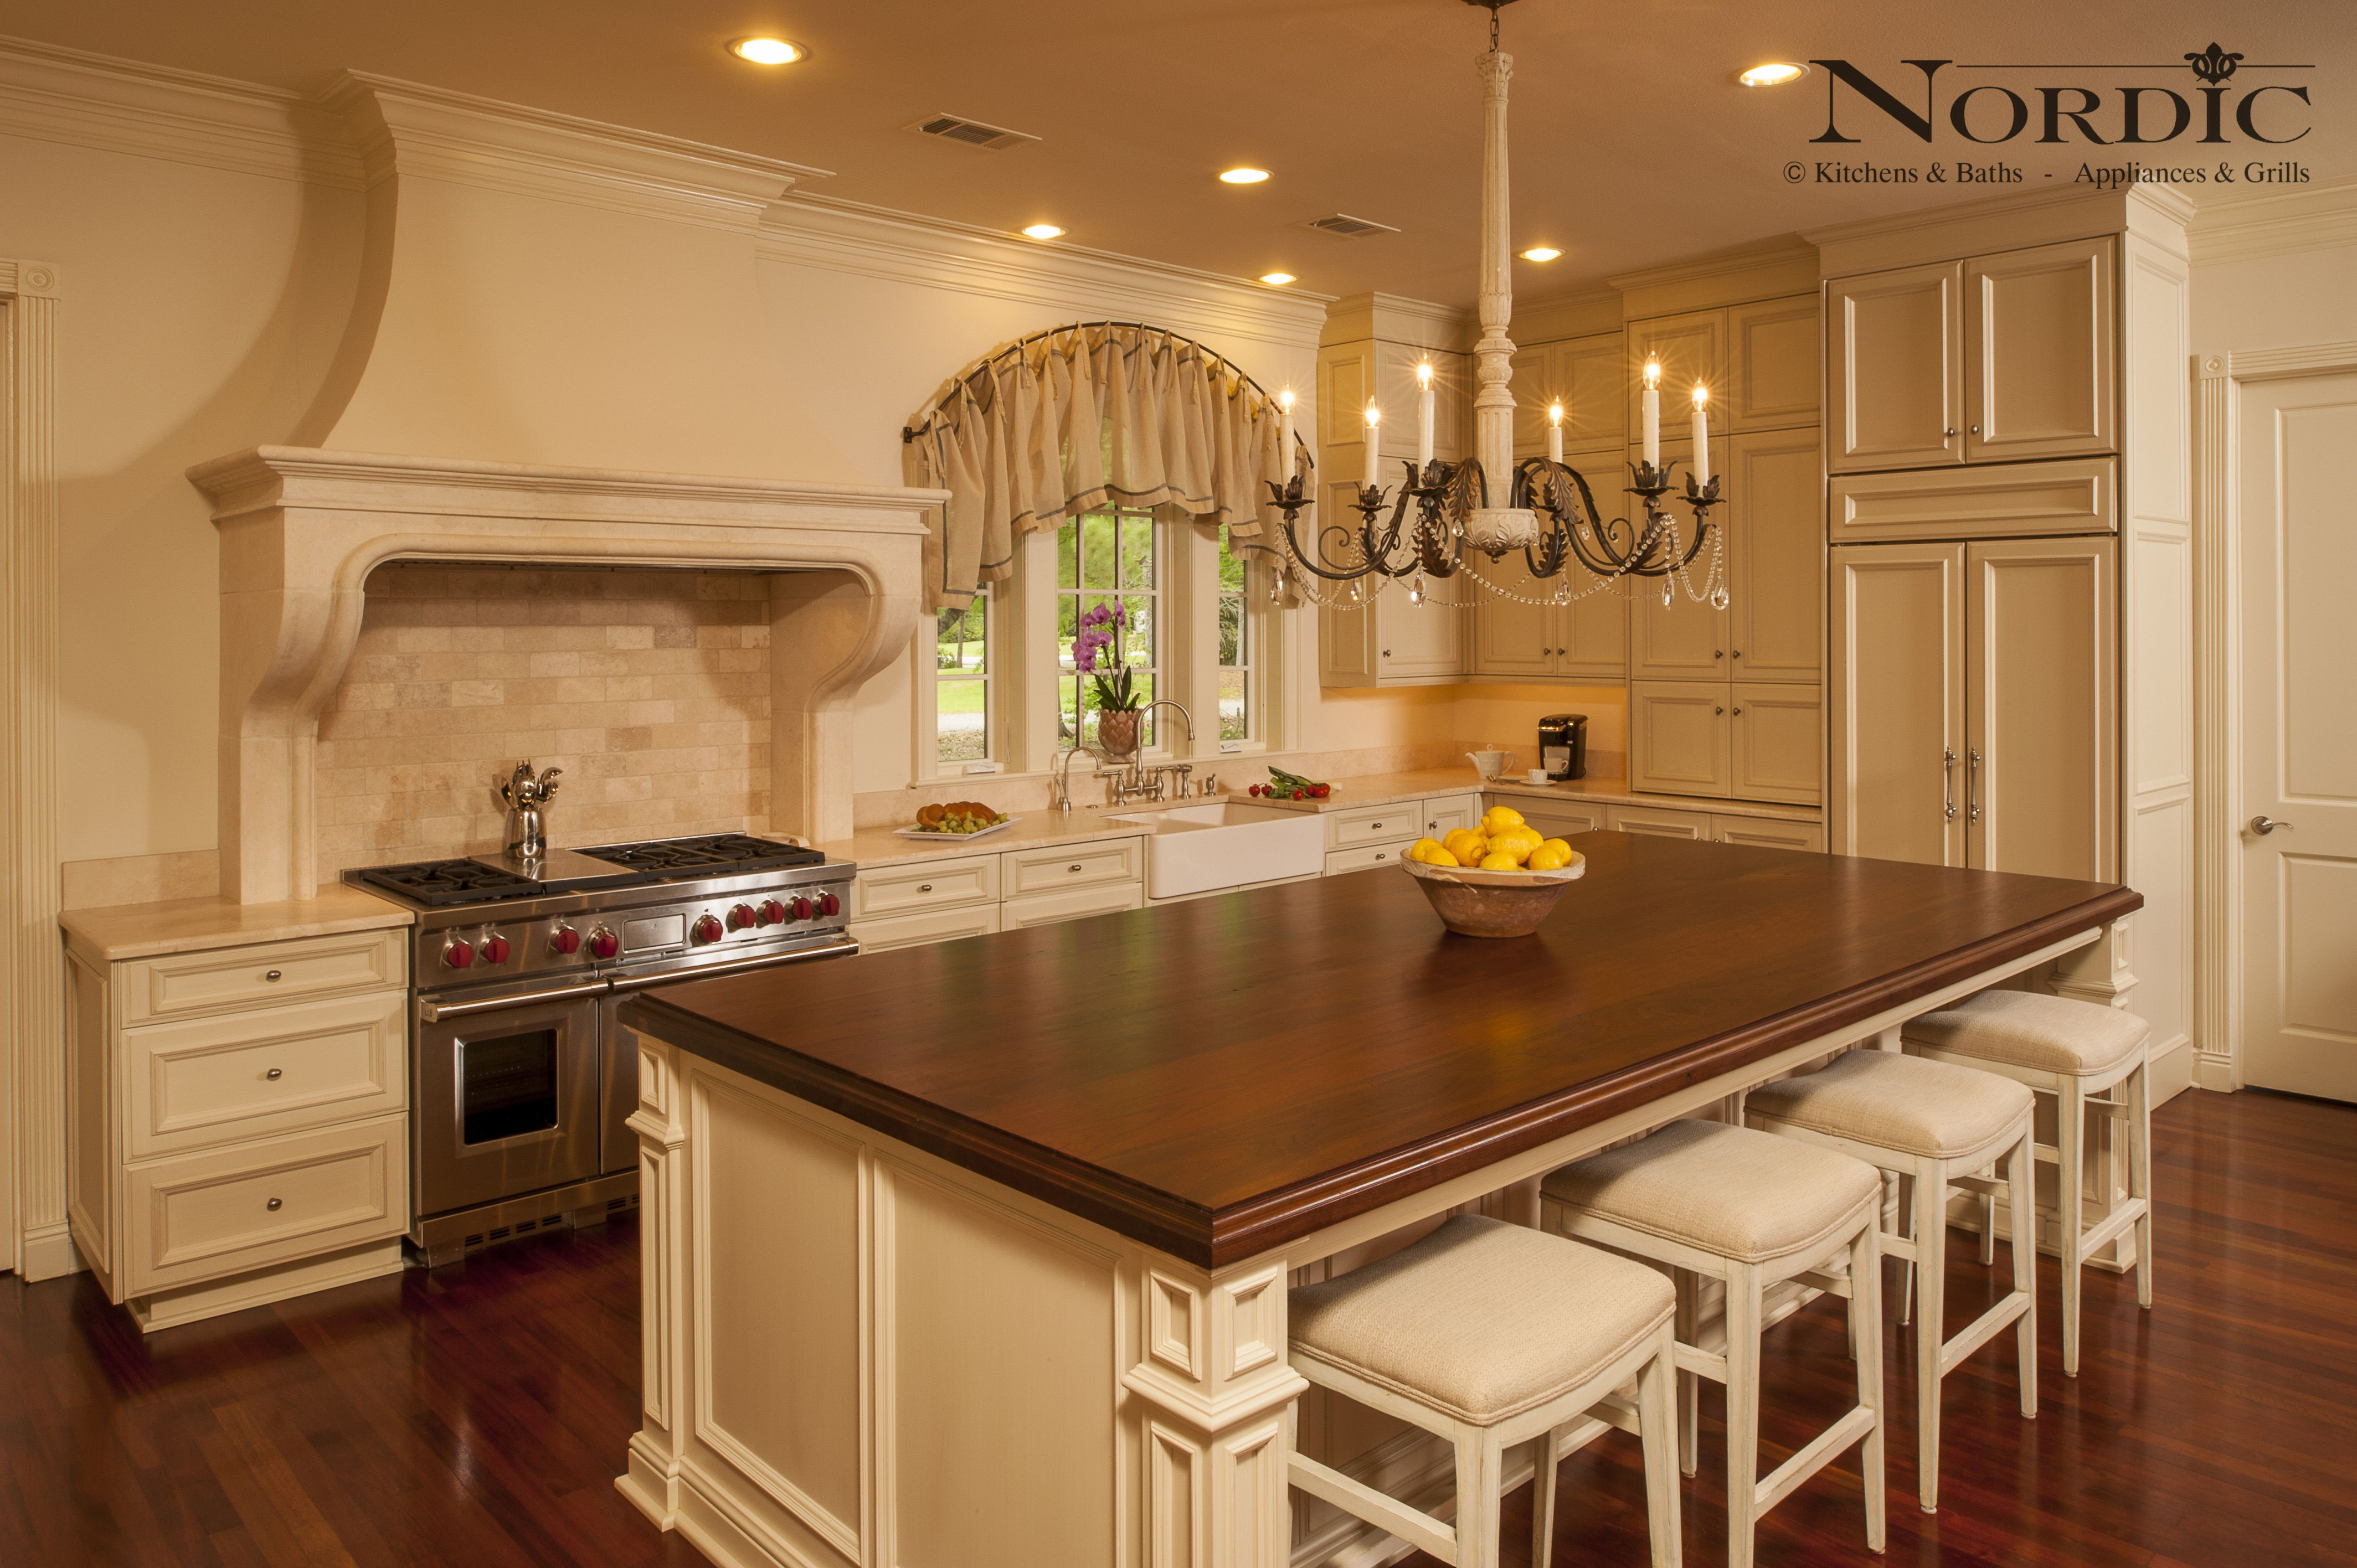 Smithport Cabinetry Nordic Kitchens And Baths Metairie La Kitchen Cabinet Layout Kitchen Layout Kitchen